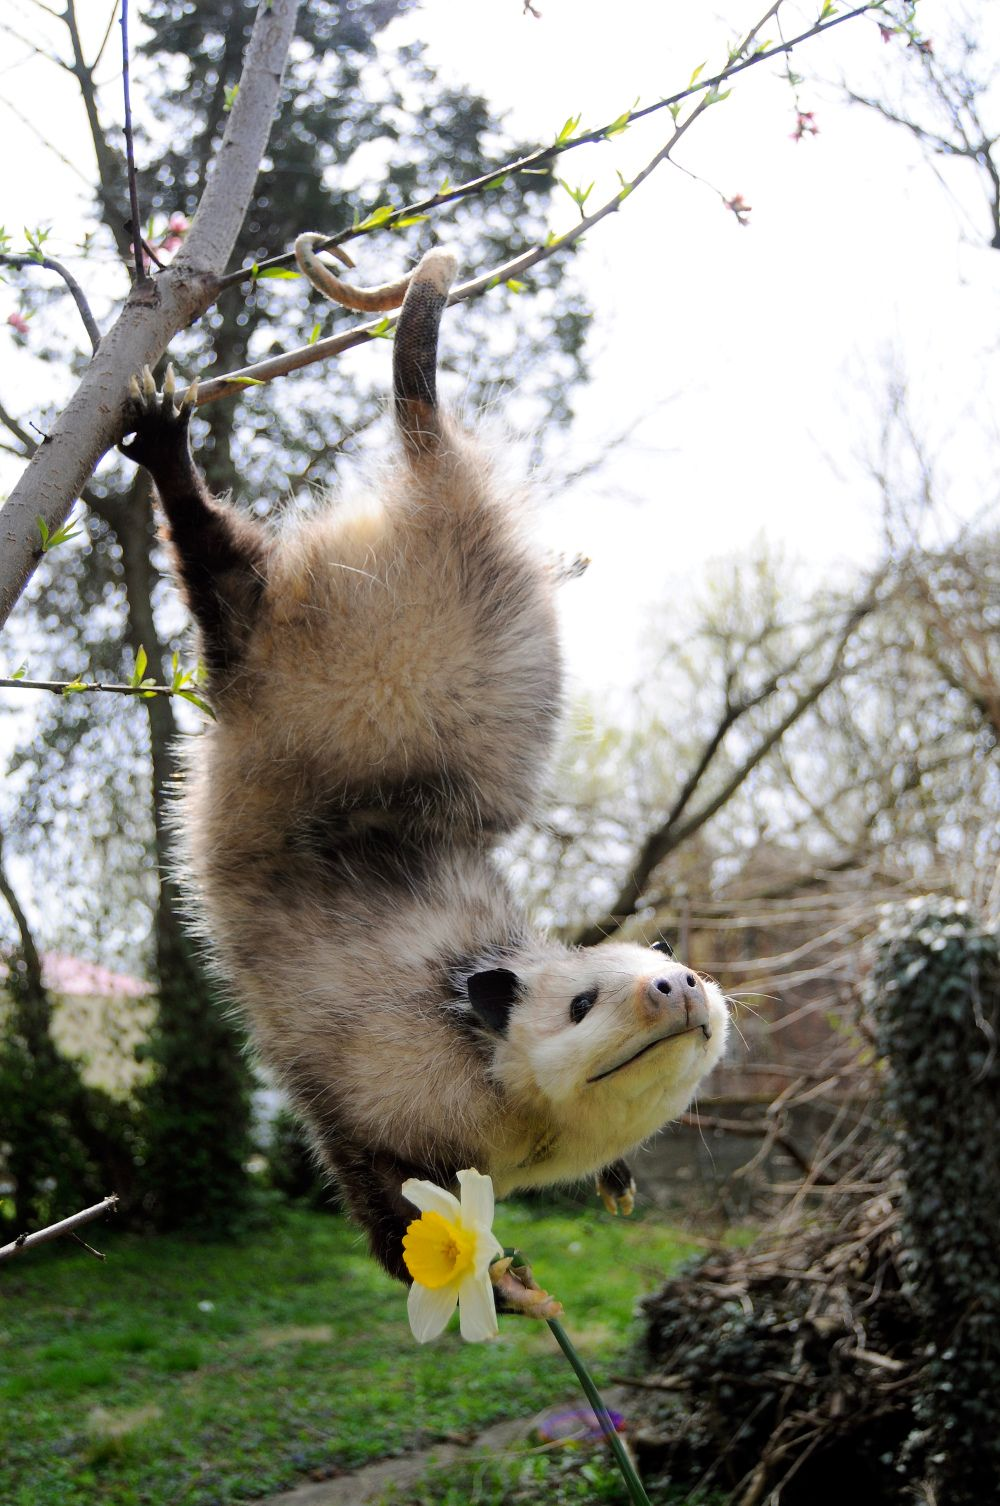 cute opossum taxidermy holding flower art once living